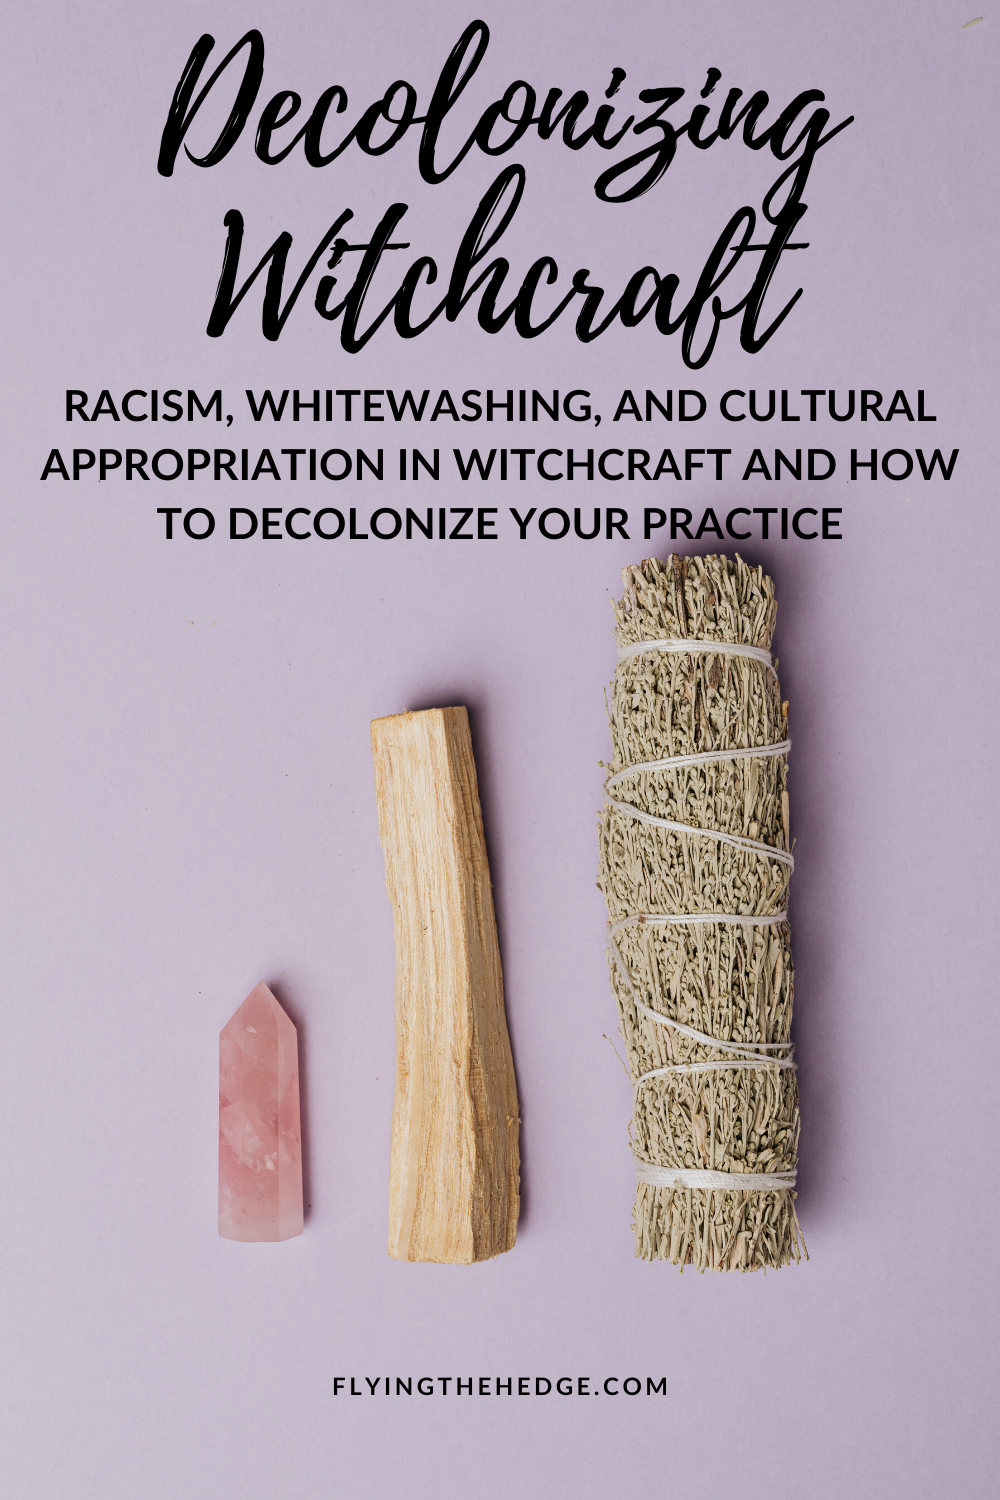 cultural appropriation, witchcraft, decolonizing, whitewashing, racism, witch, witchy, witch life, wicca, wiccan, pagan, neopagan